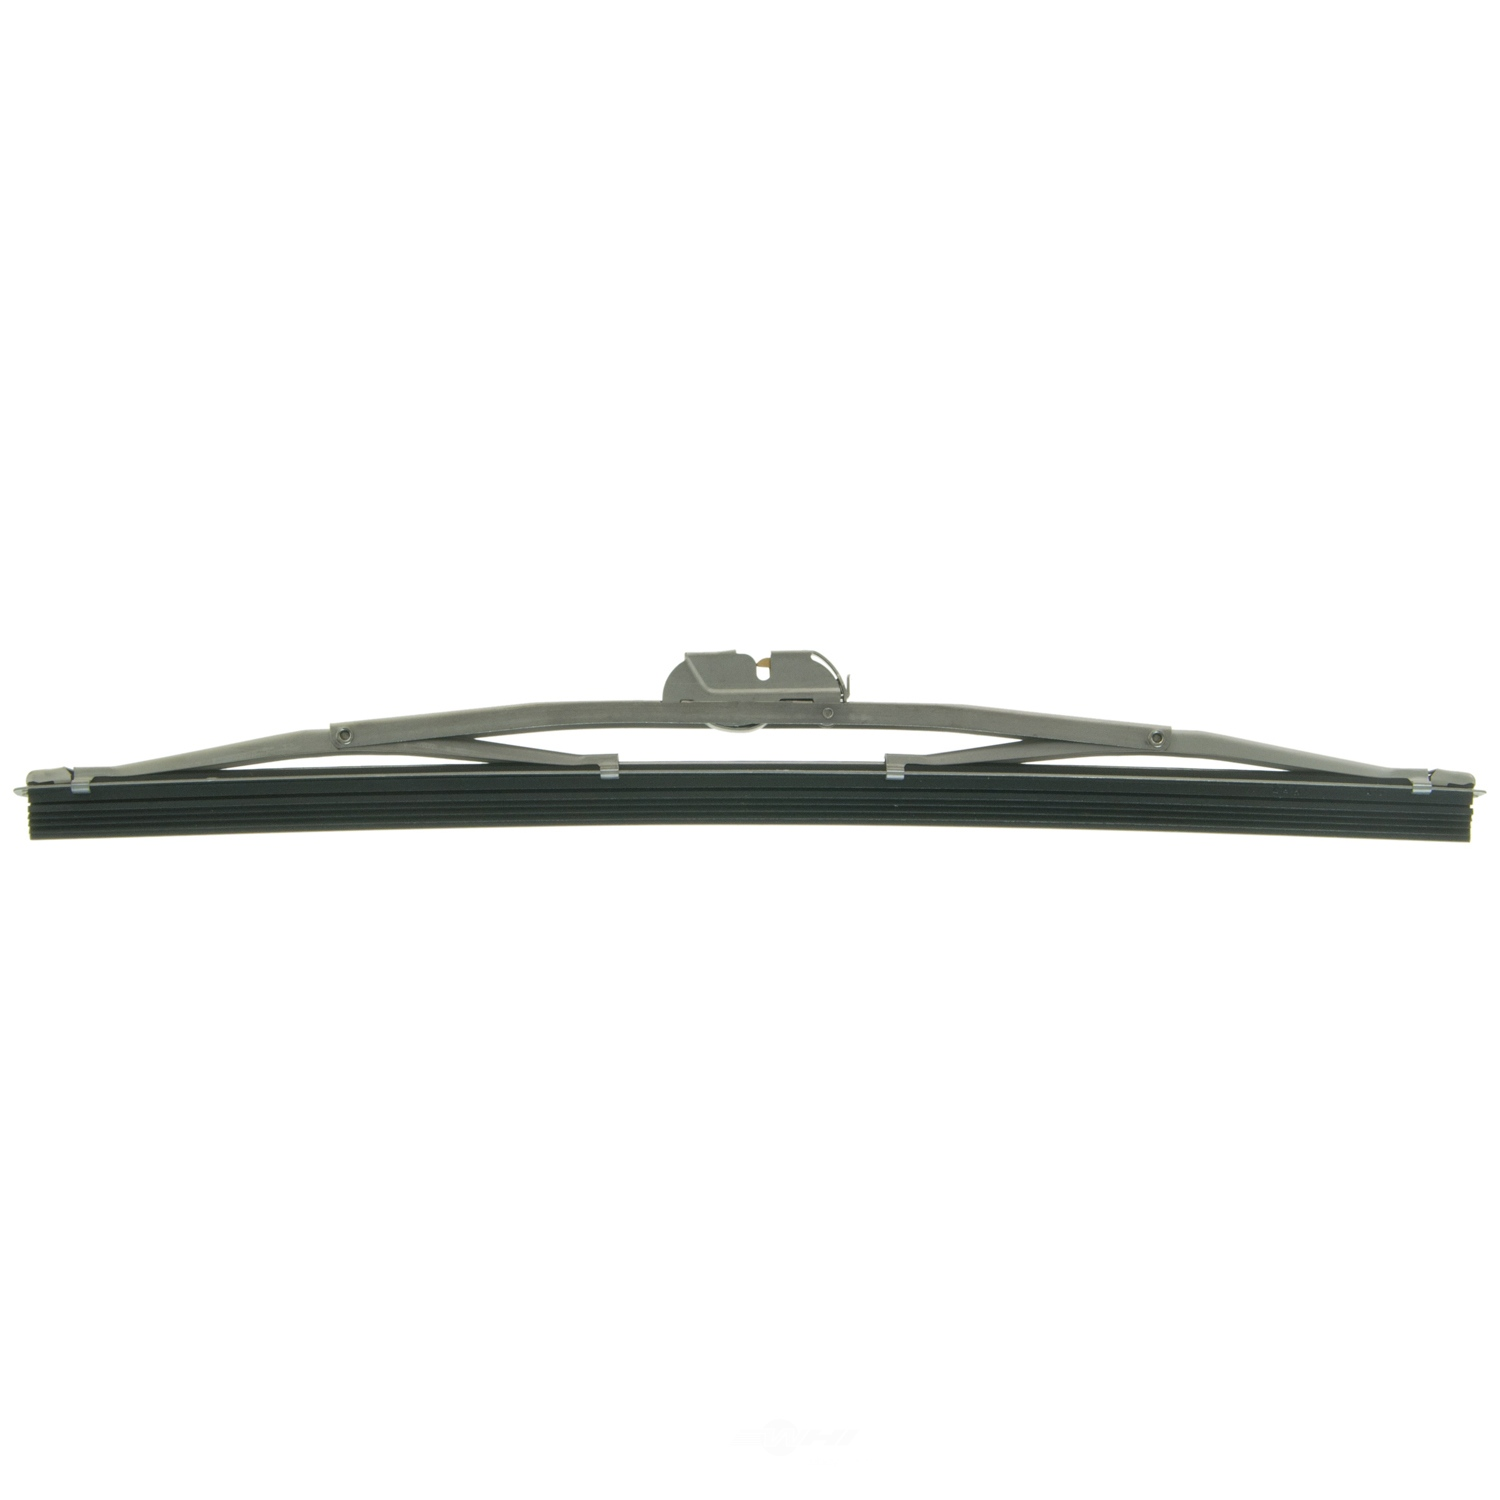 ANCO WIPER PRODUCTS - Vintage Wiper Blade (Front) - ANC 20-09